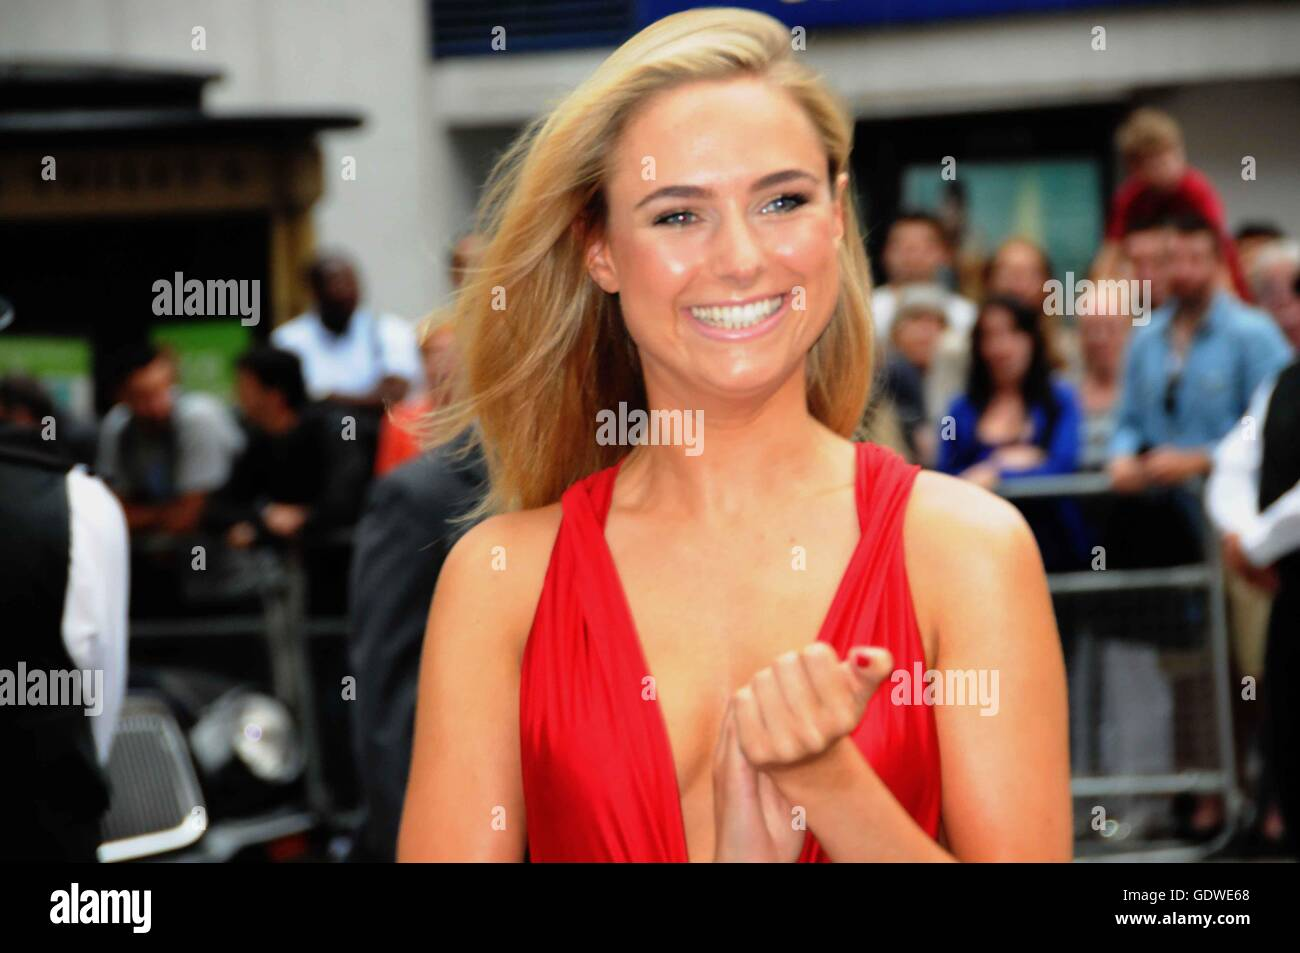 Kimberley Garner/Made in Chelsea star, attends the London film premiere of Meet the Millers. - Stock Image